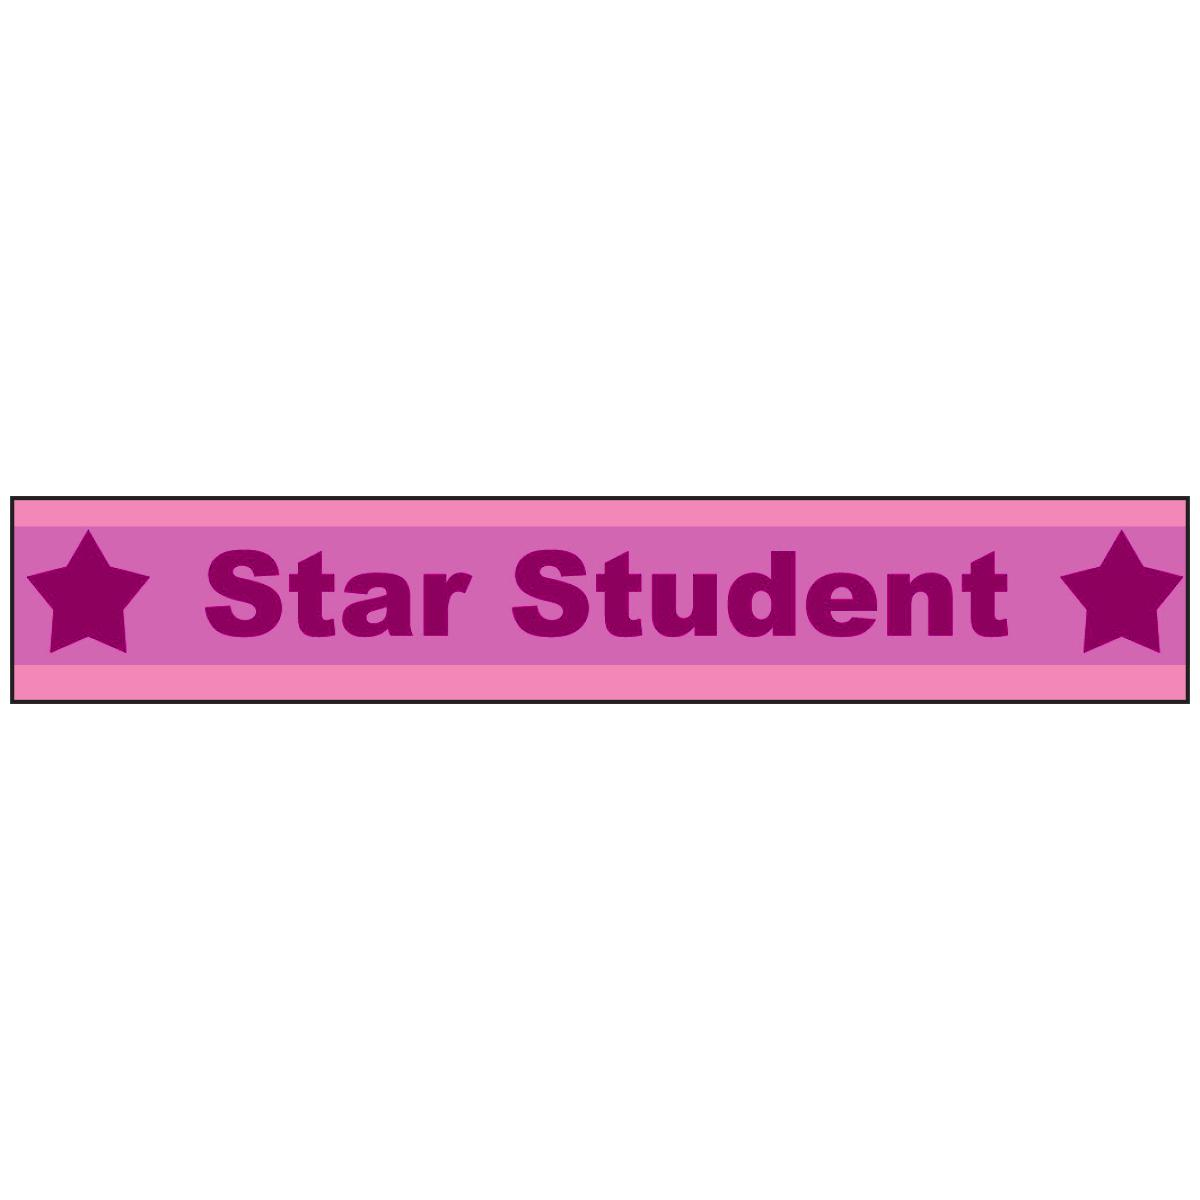 Star Student Wristbands Pack